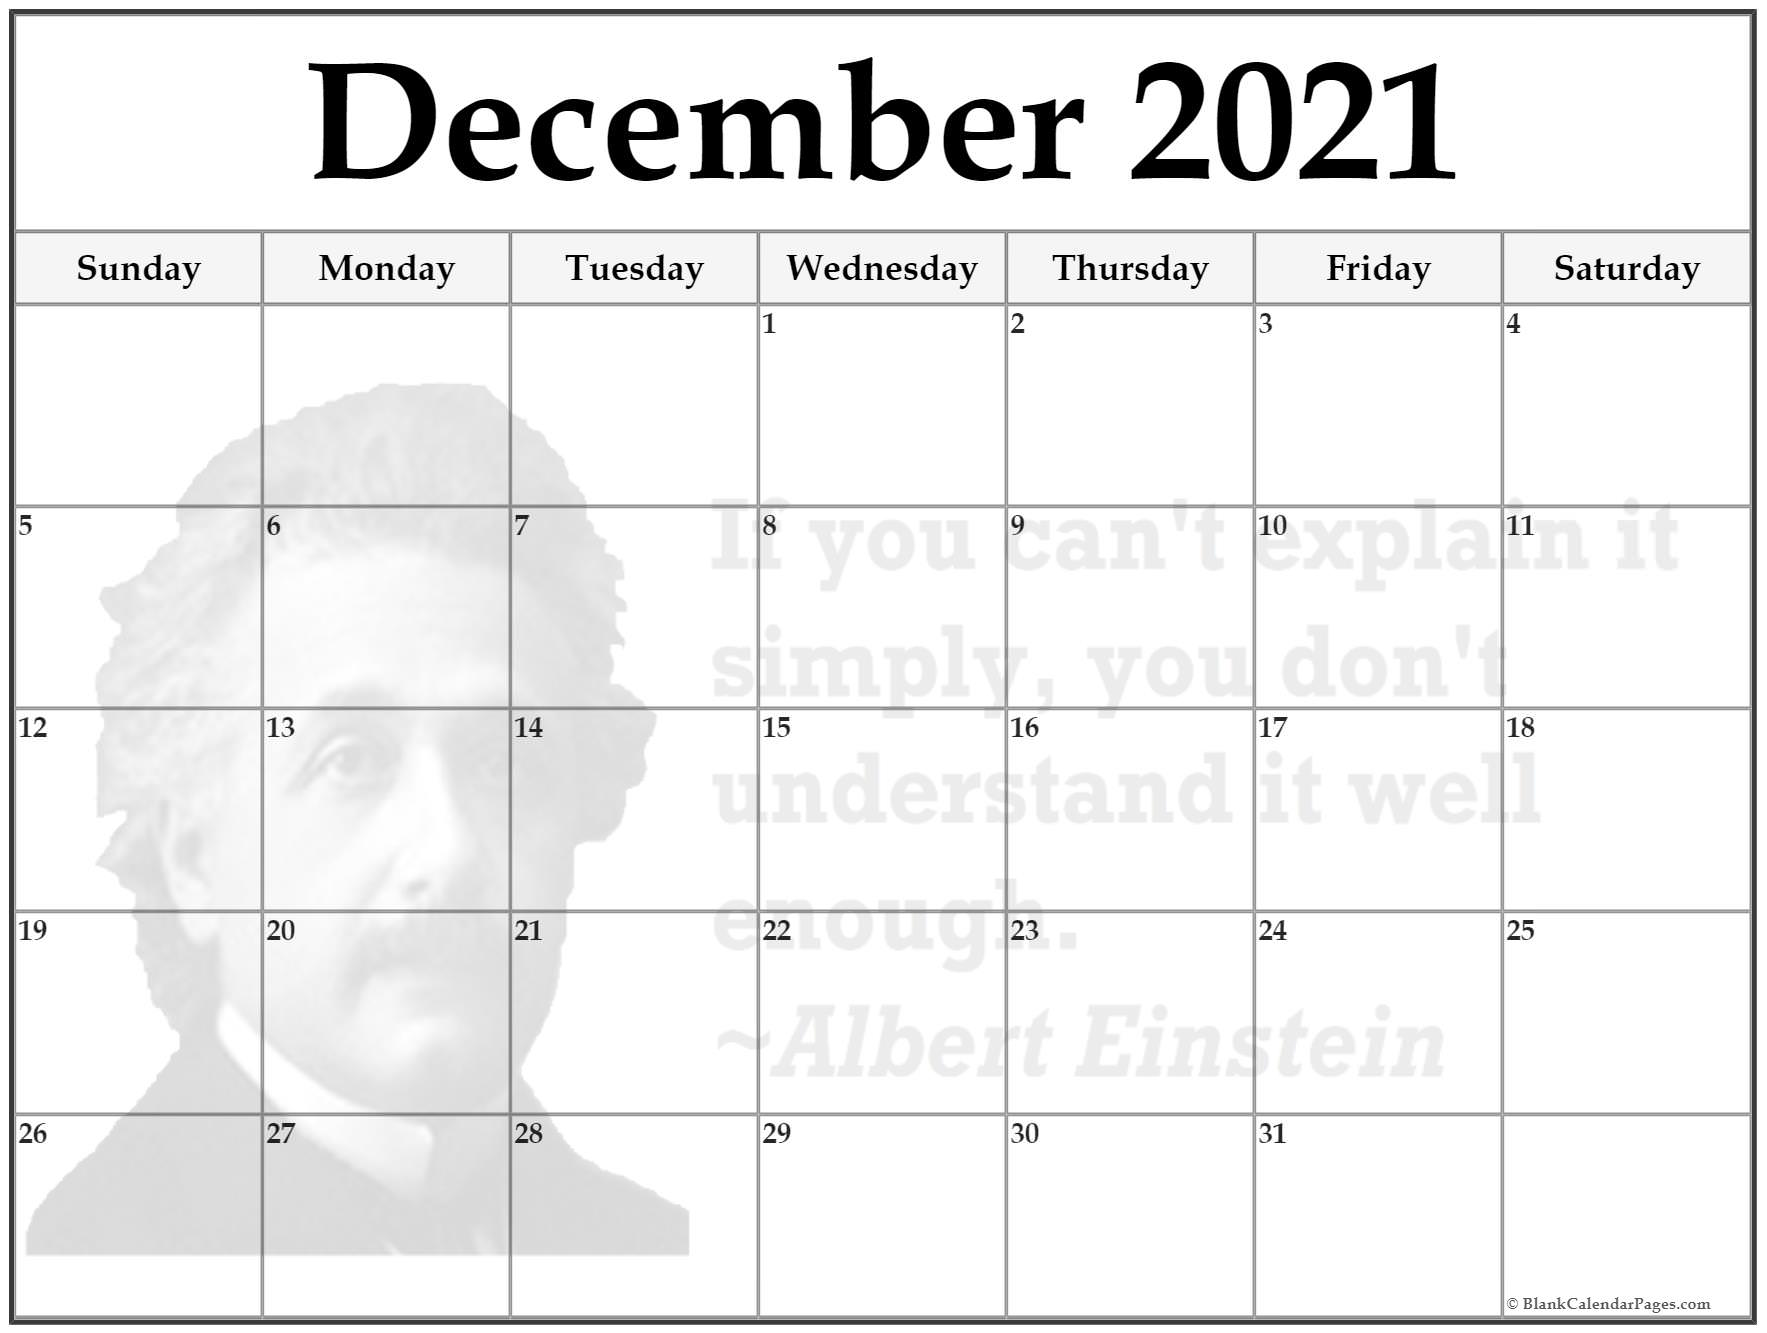 December calendar 2021If you can't explain it simply, then you don't understand it well enough ~Albert Einstein